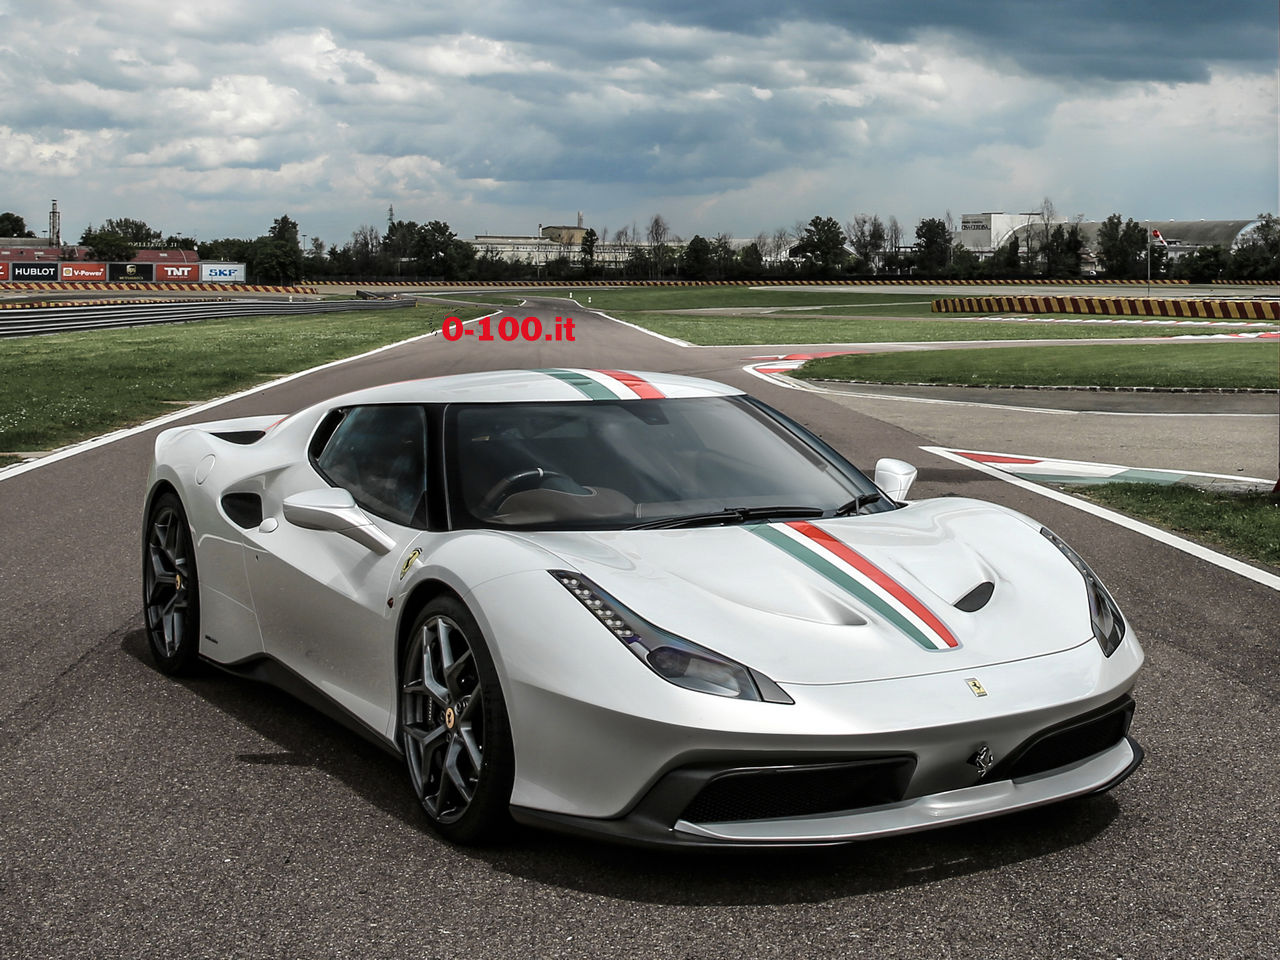 ferrari-458-mm-speciale-one-off_0-100_1